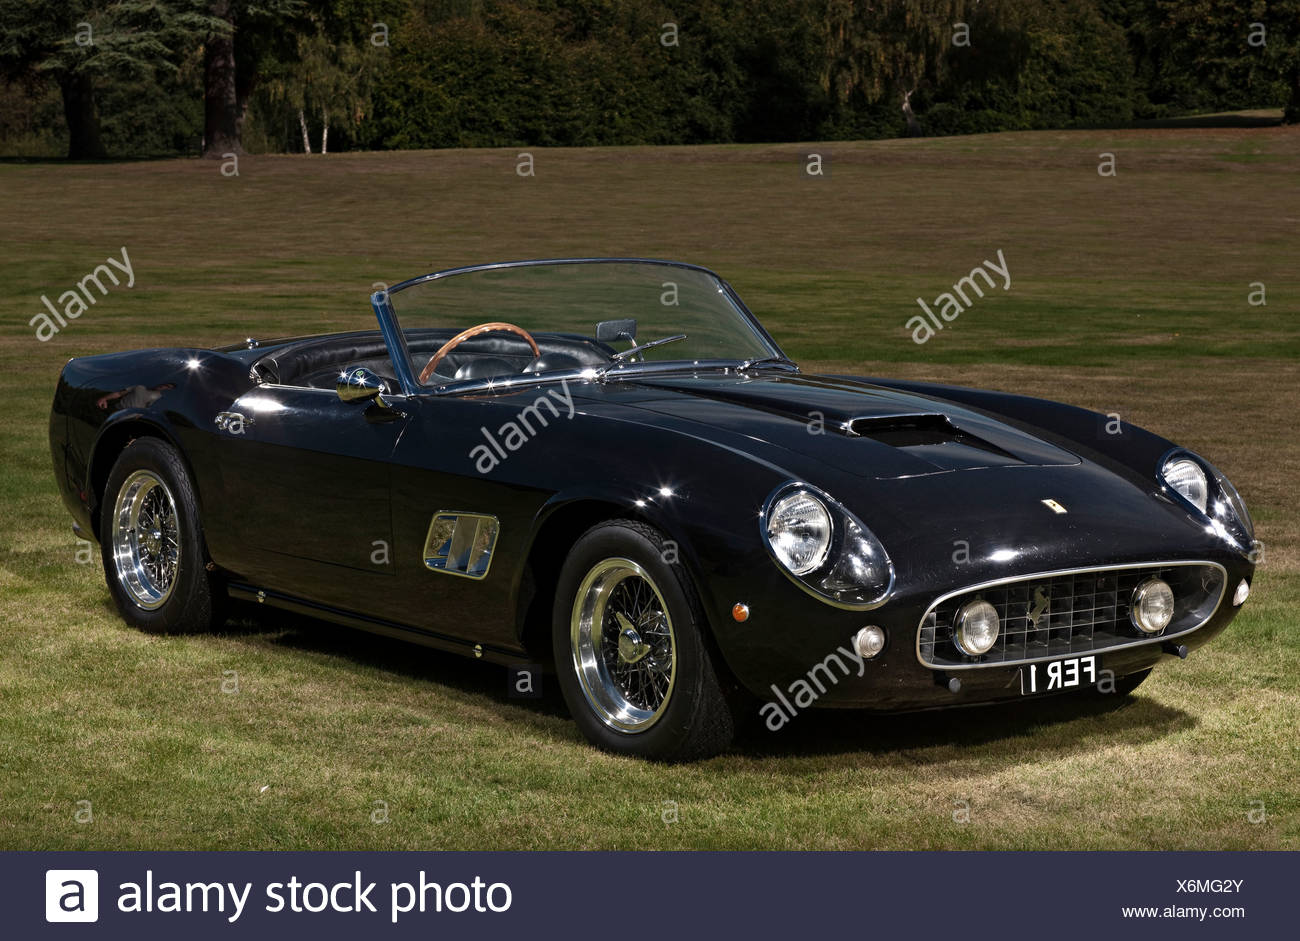 Black Classic Ferrari California sports car Stock Photo